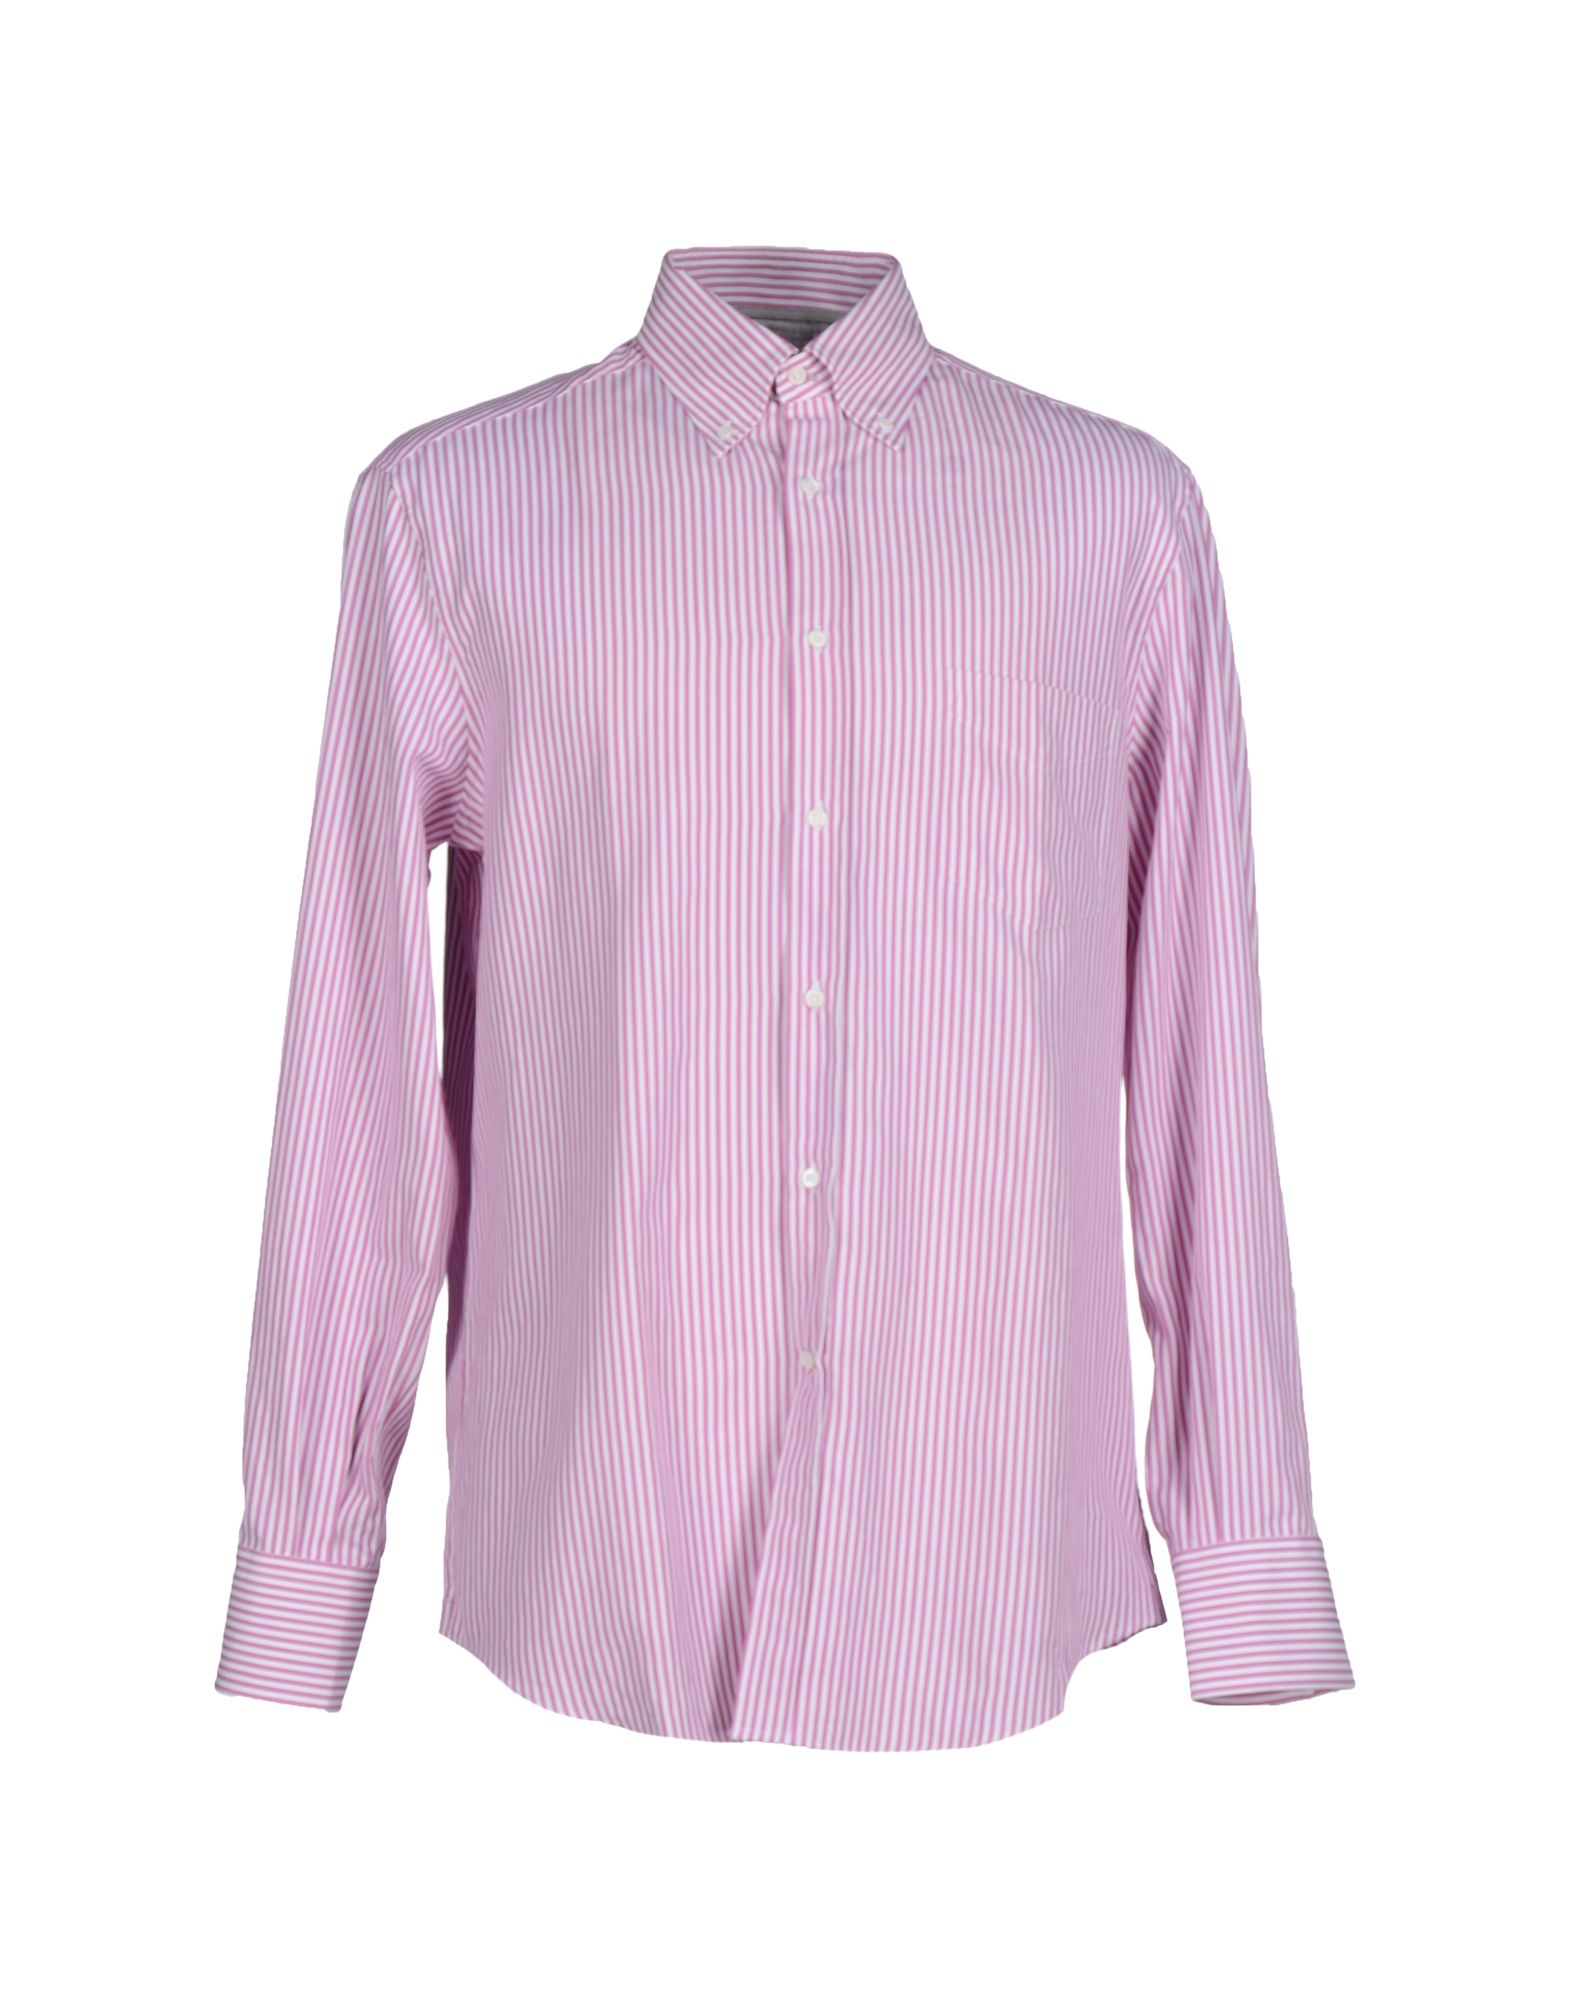 Brunello cucinell shirt in purple for men light purple Light purple dress shirt men